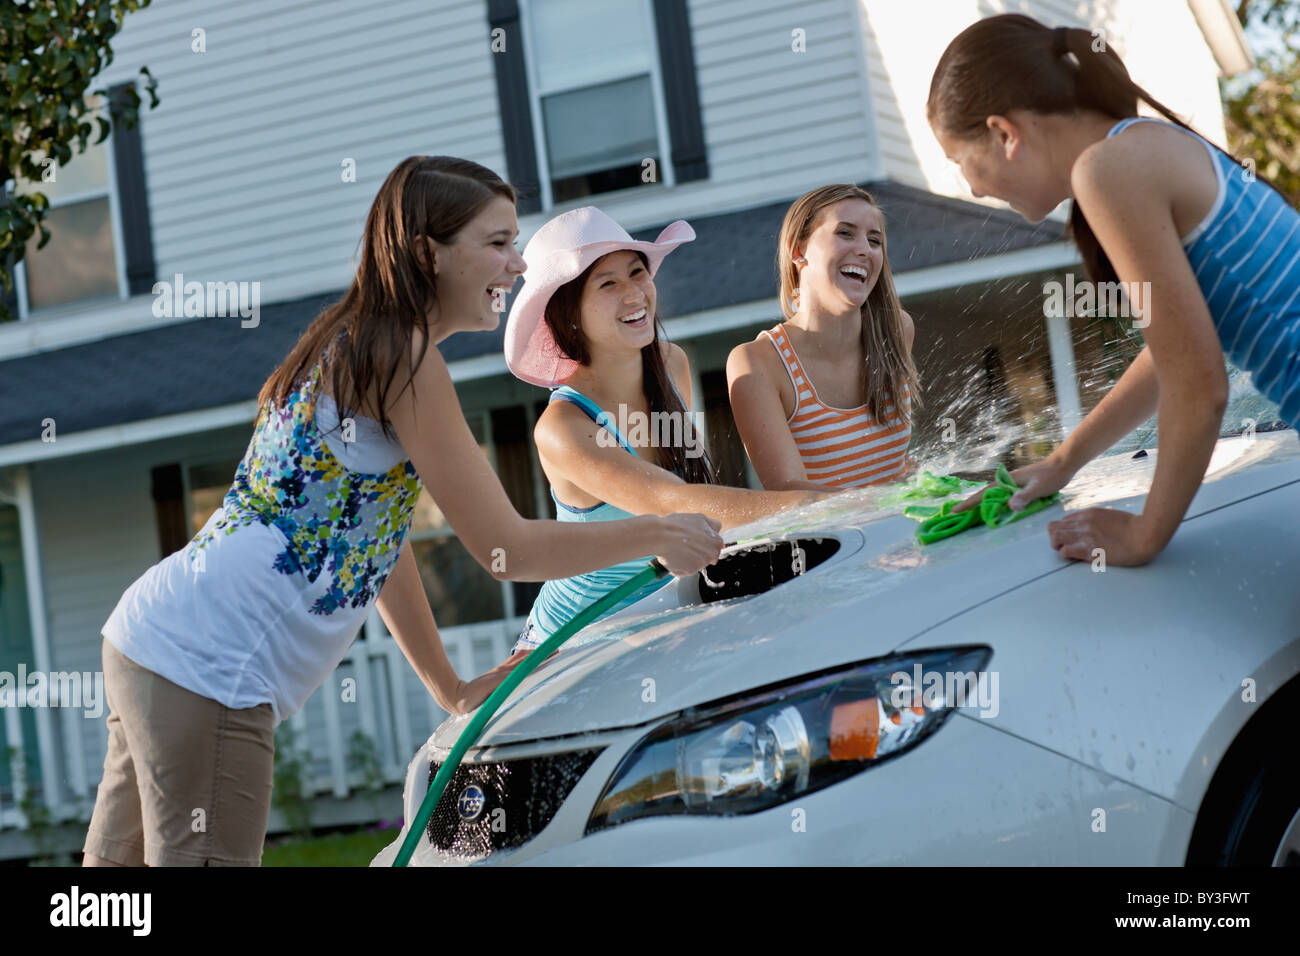 young-teen-girl-on-car